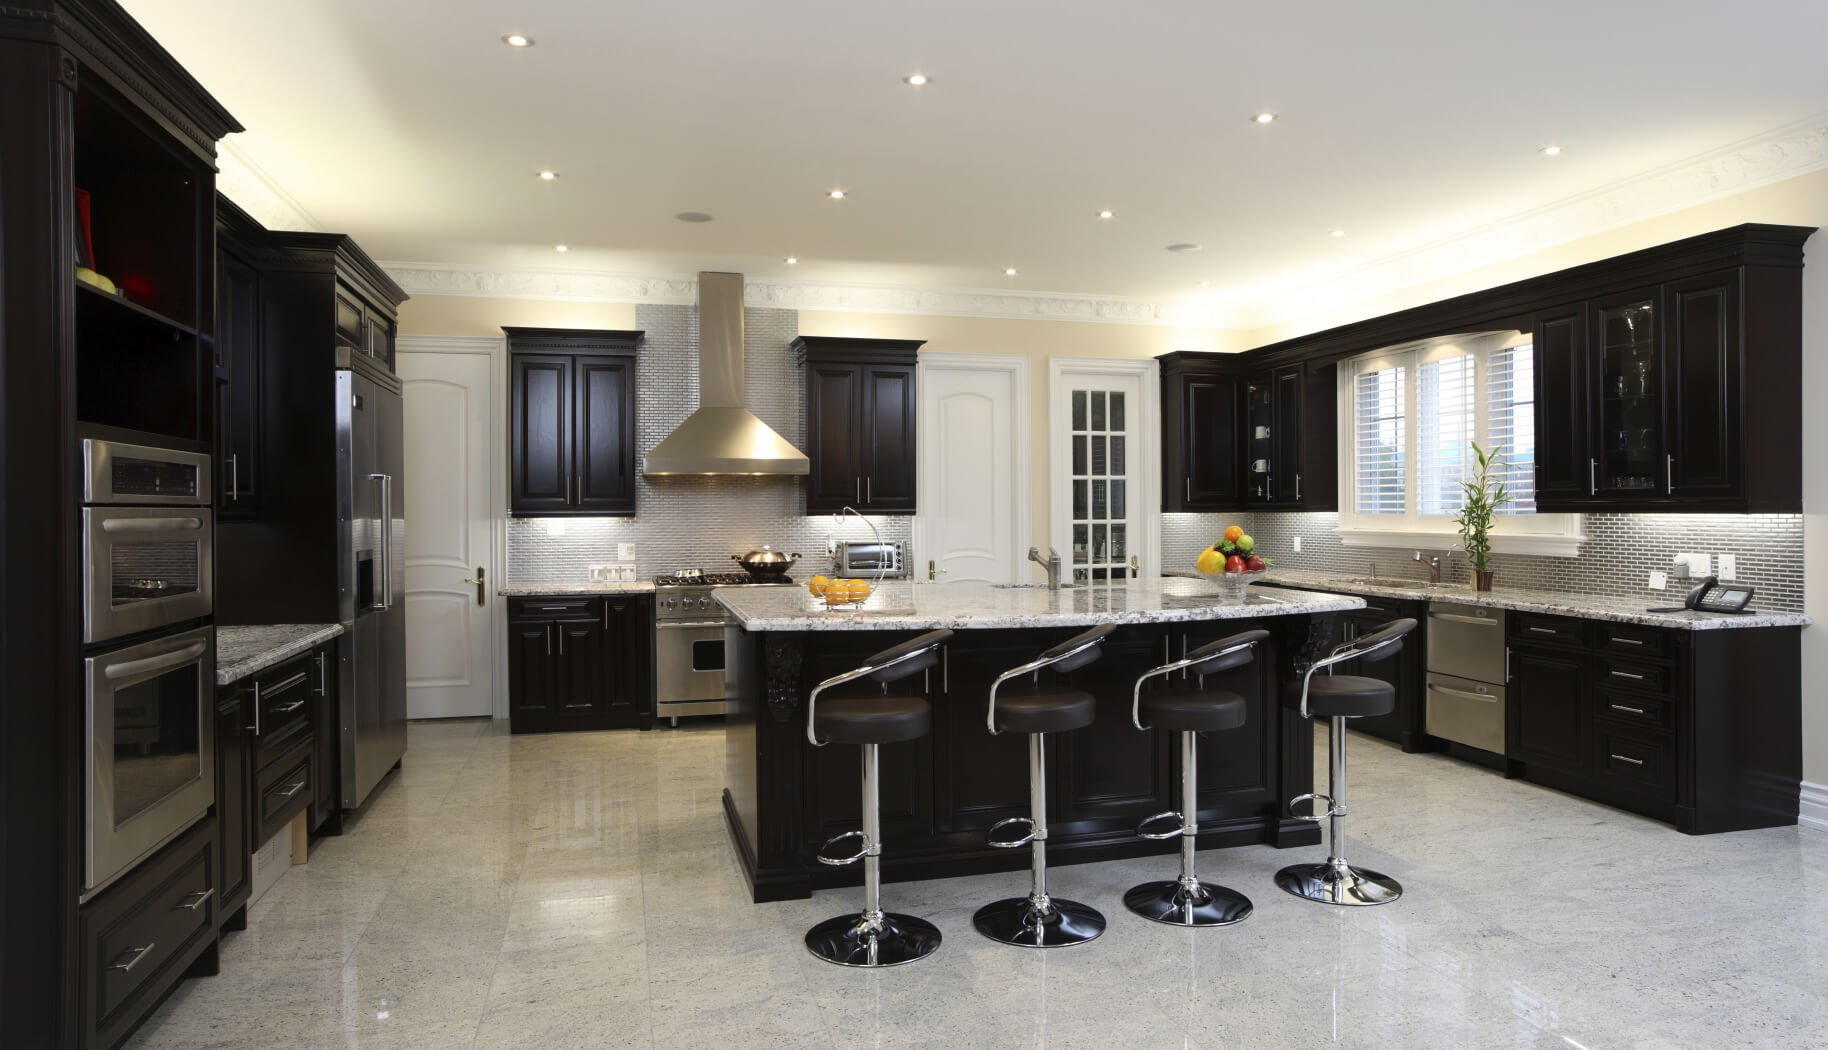 spacious modern kitchen with dark cabinetry breakfast bar 4 modern diner style stools and - Images Of Cabinets For Kitchen